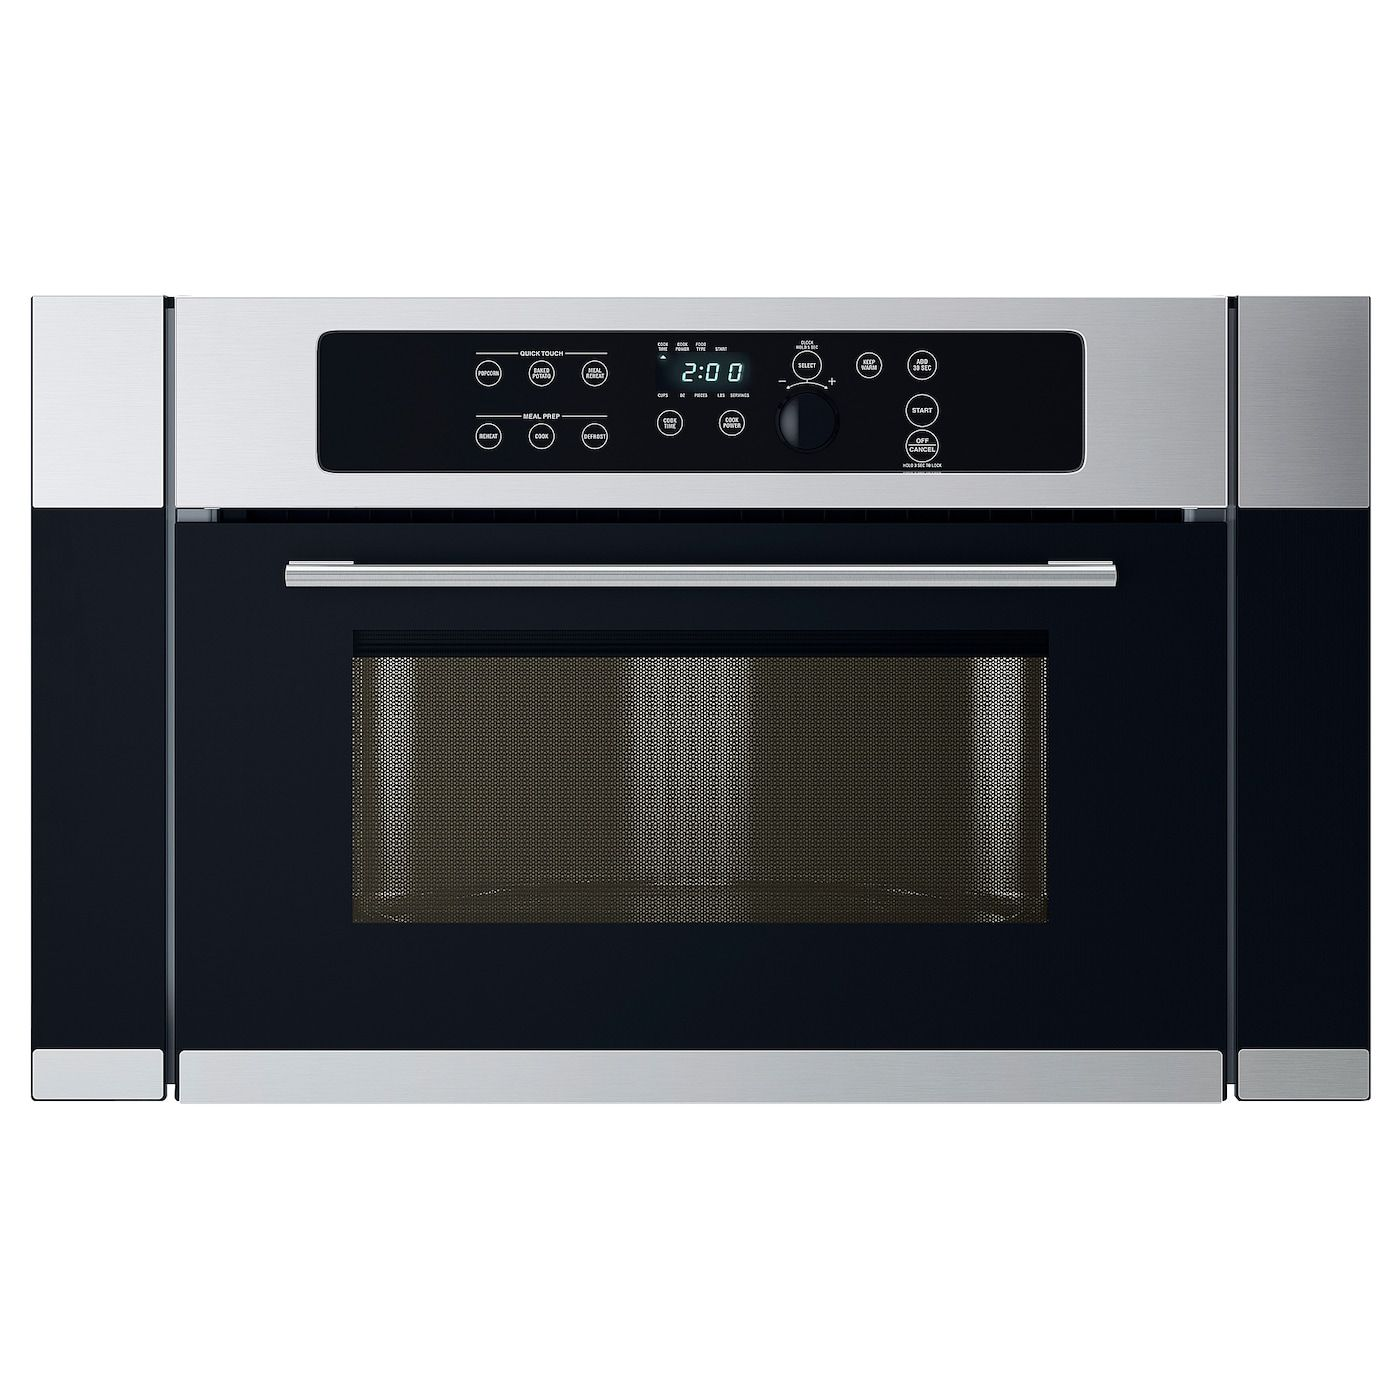 Nutid Microwave Oven Stainless Steel Ikea In 2020 Stainless Steel Oven Range Cooker Microwave Oven